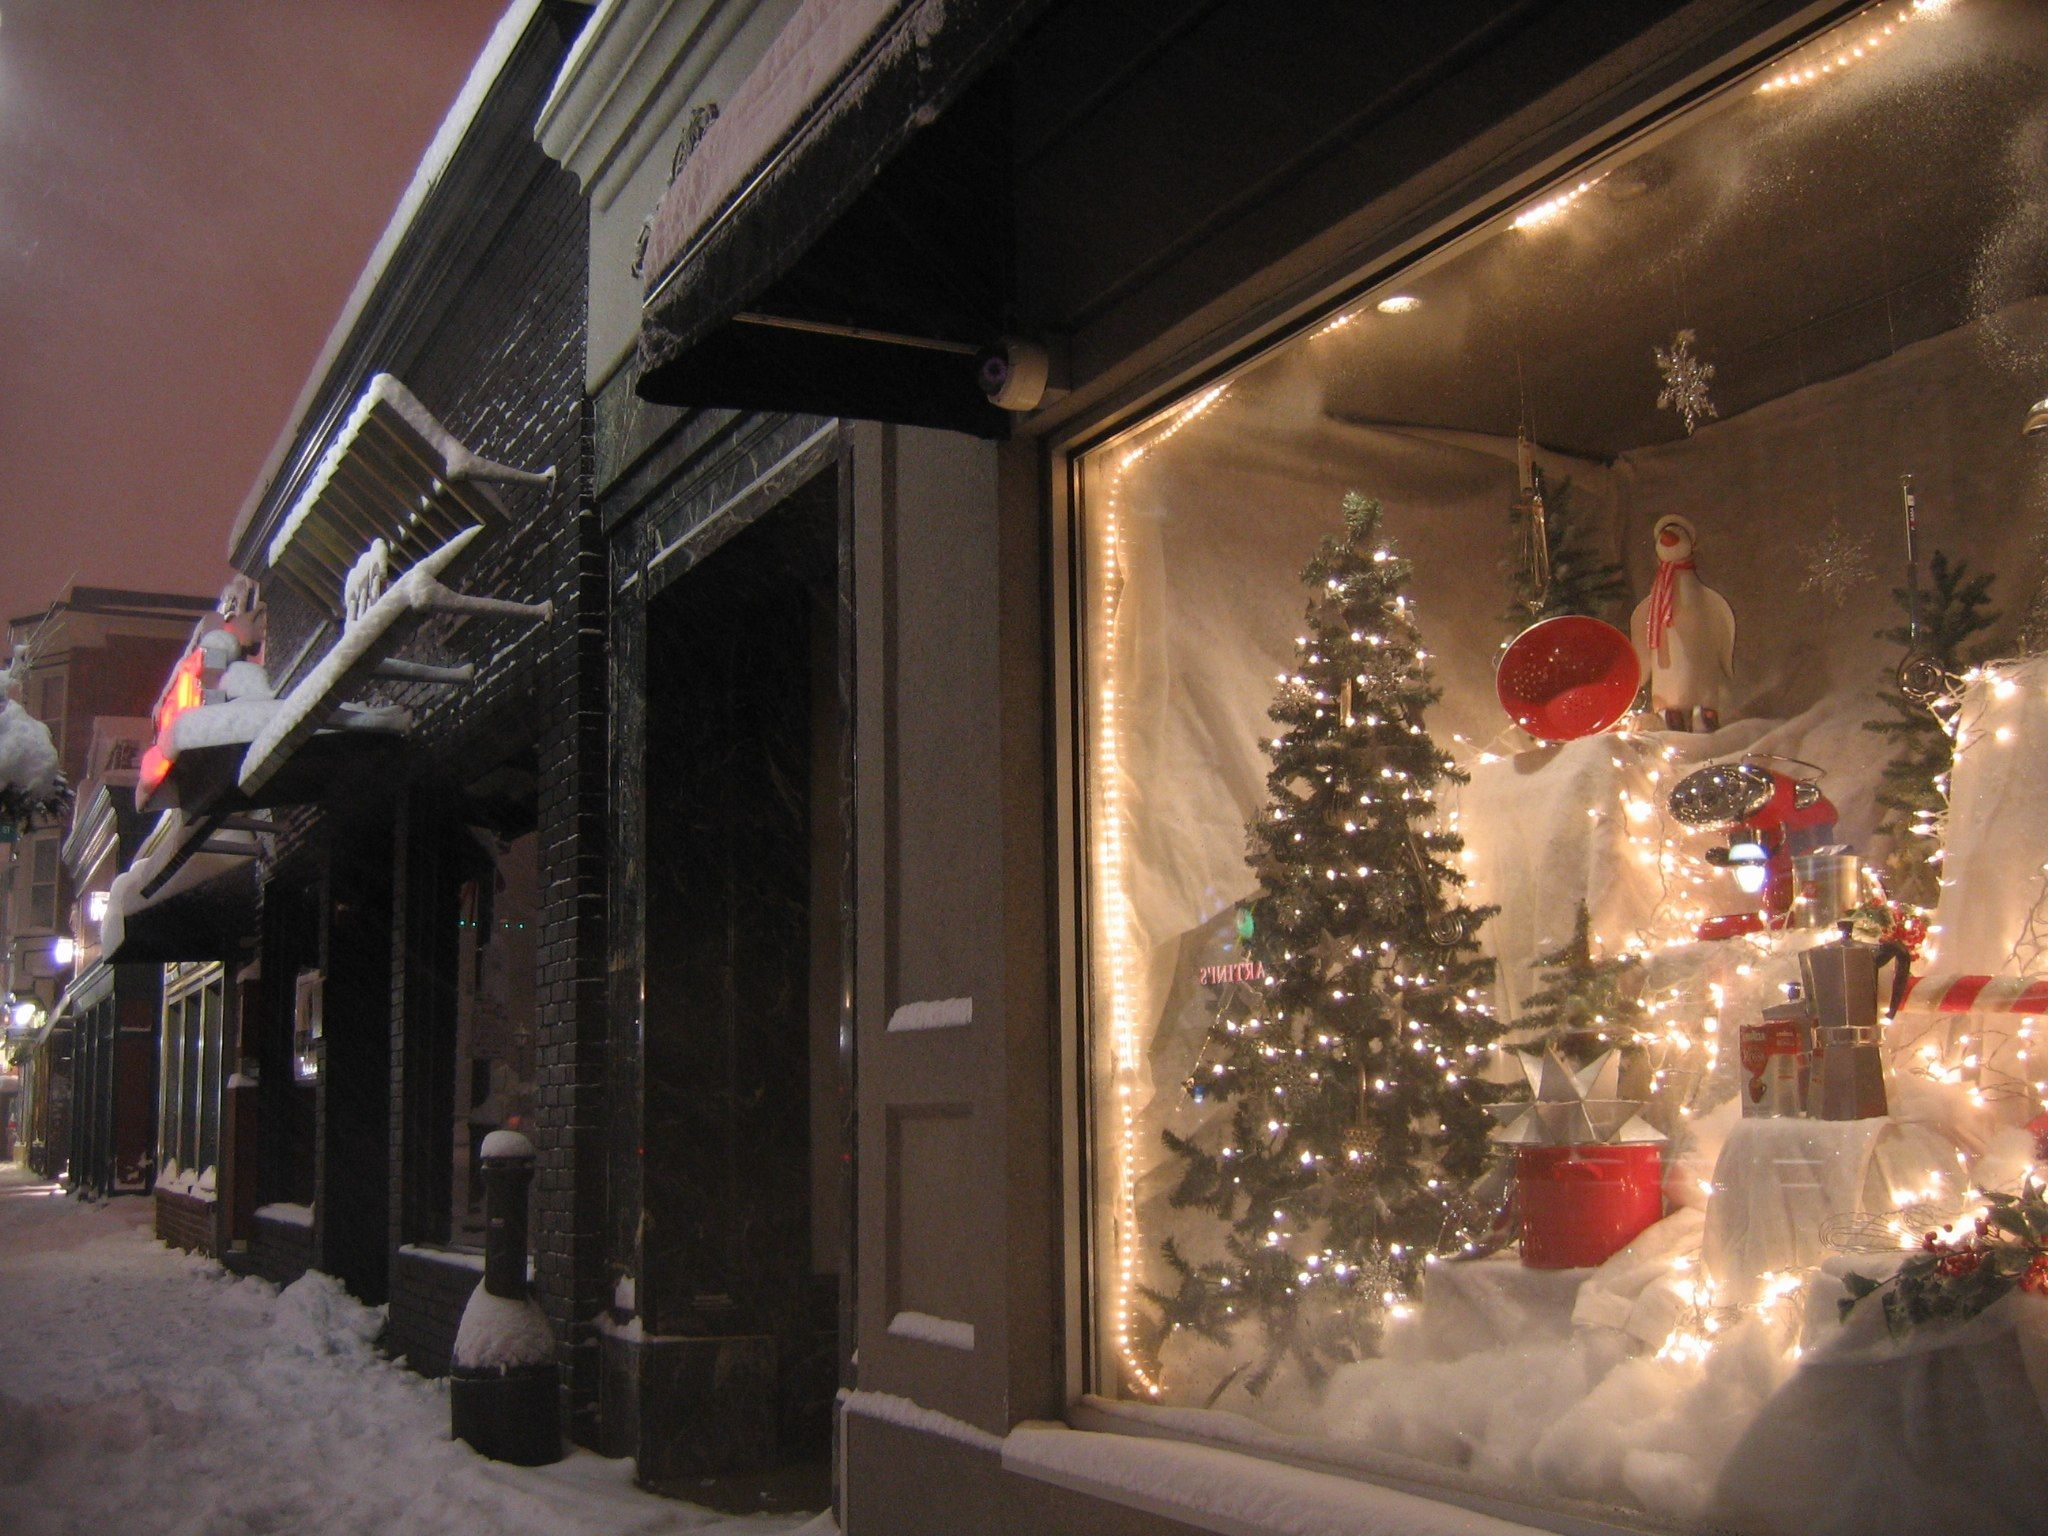 Christmas In These 5 Rhode Island Towns Looks Like Something From A Hallmark Movie in 2020 ...